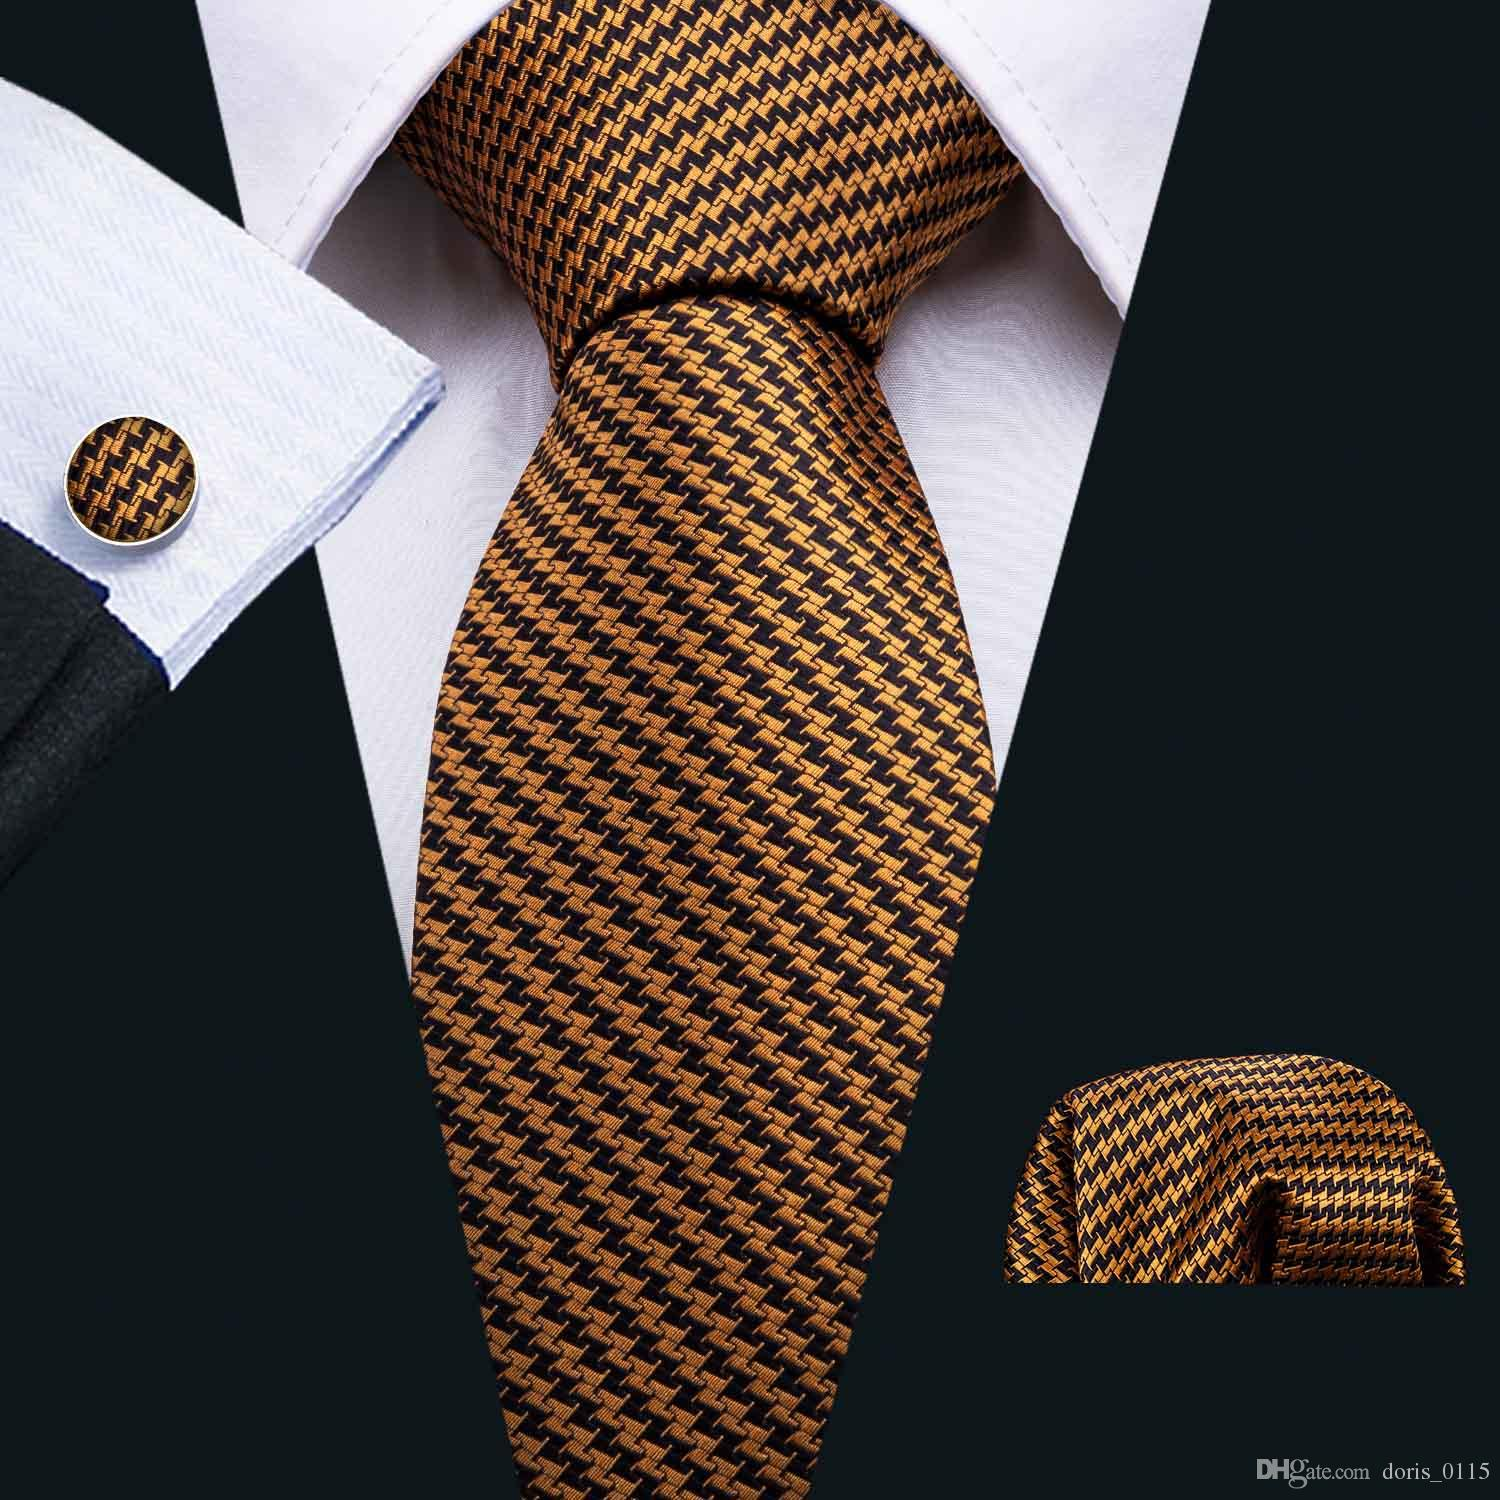 Fast Shipping Silk Tie Gold black Luxury Tie Gift Set Classic Tie for Men with Cufflink Pocket Square for Wedding Party Business N-5029